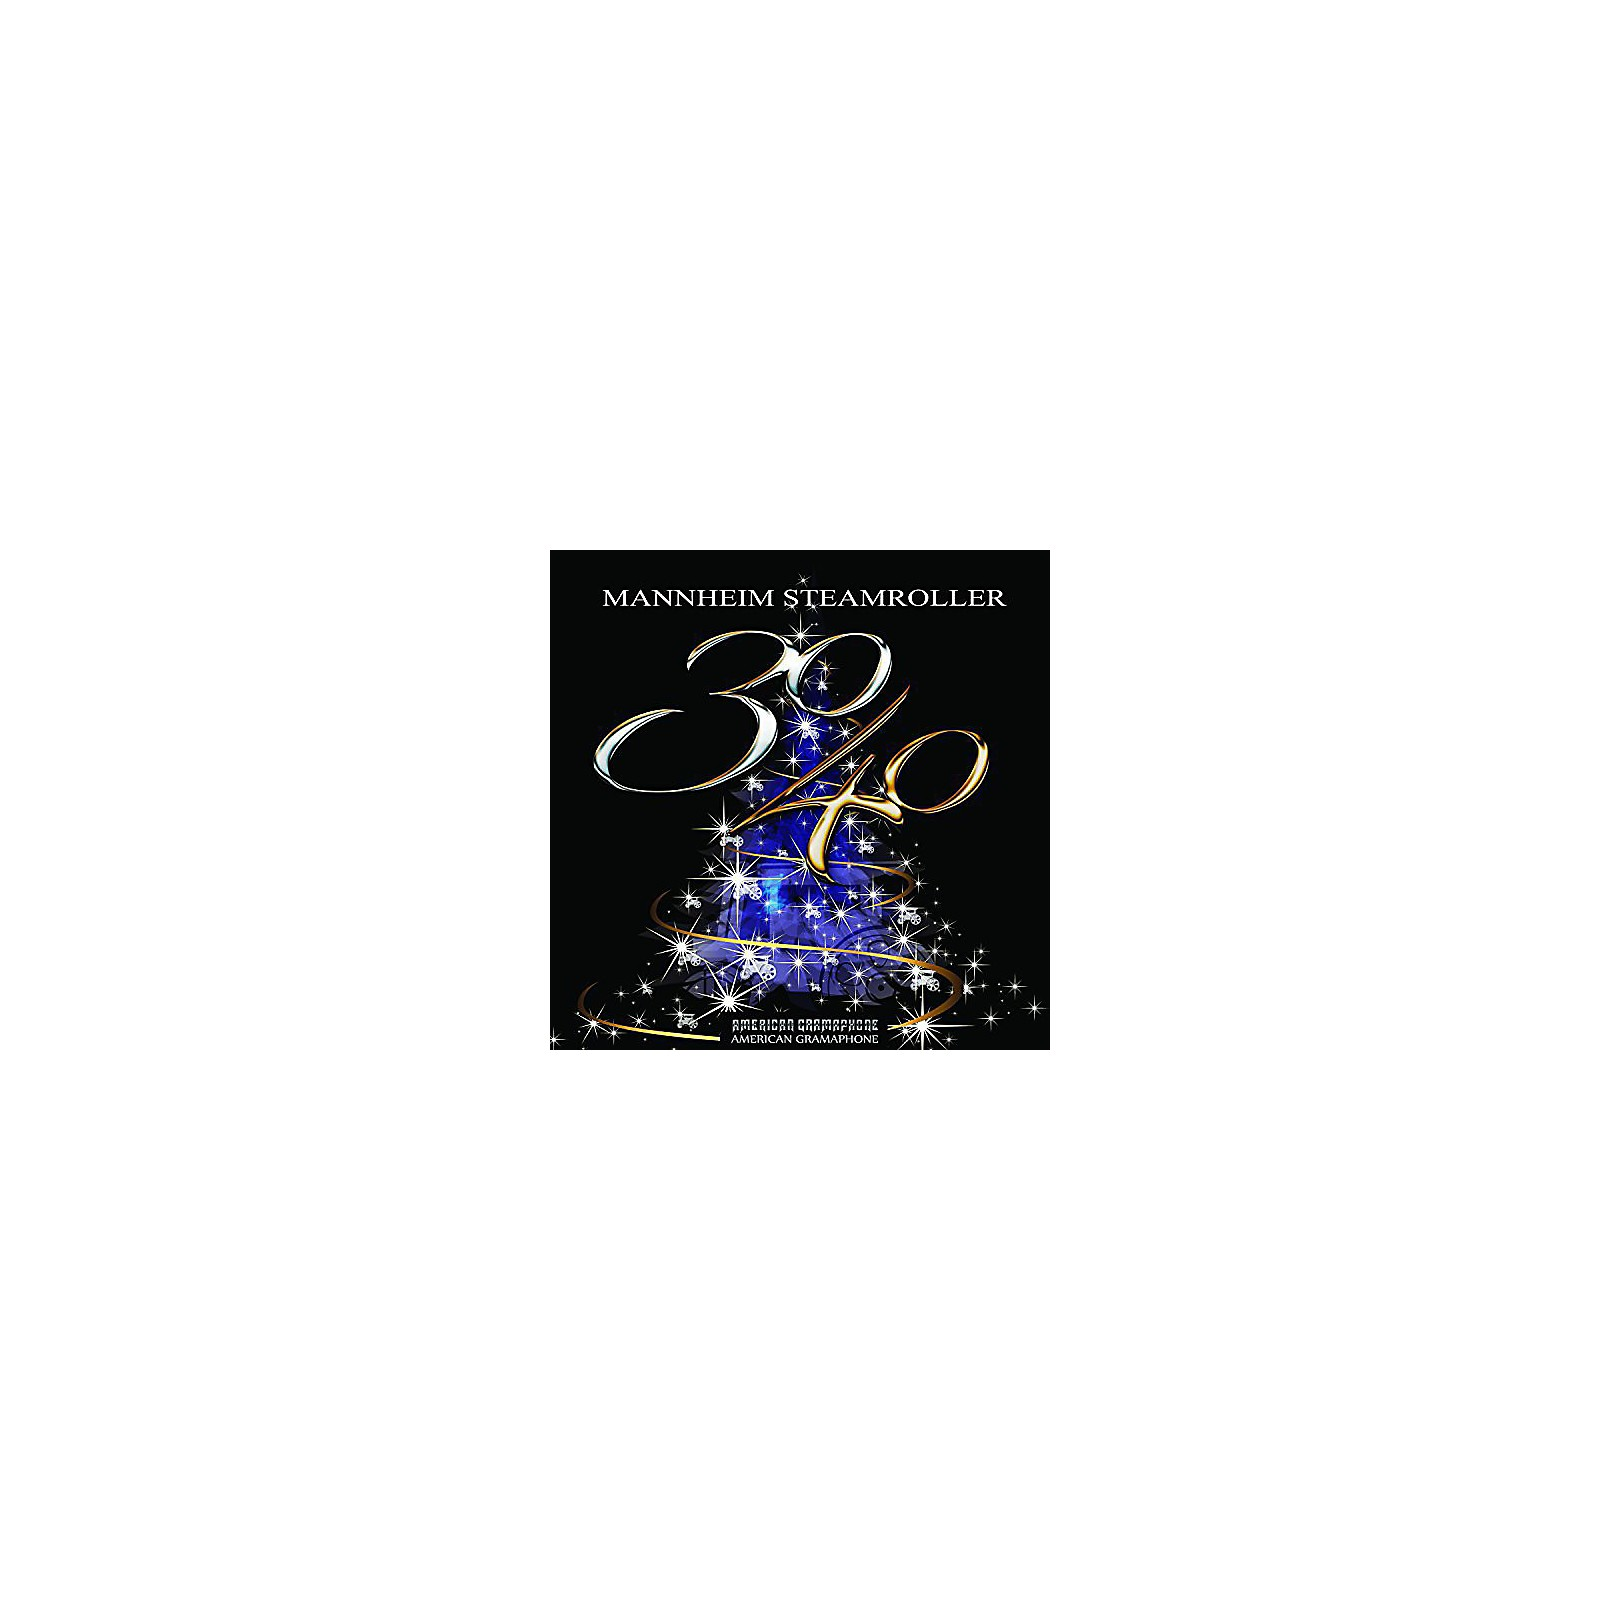 Alliance Mannheim Steamroller - 30/40